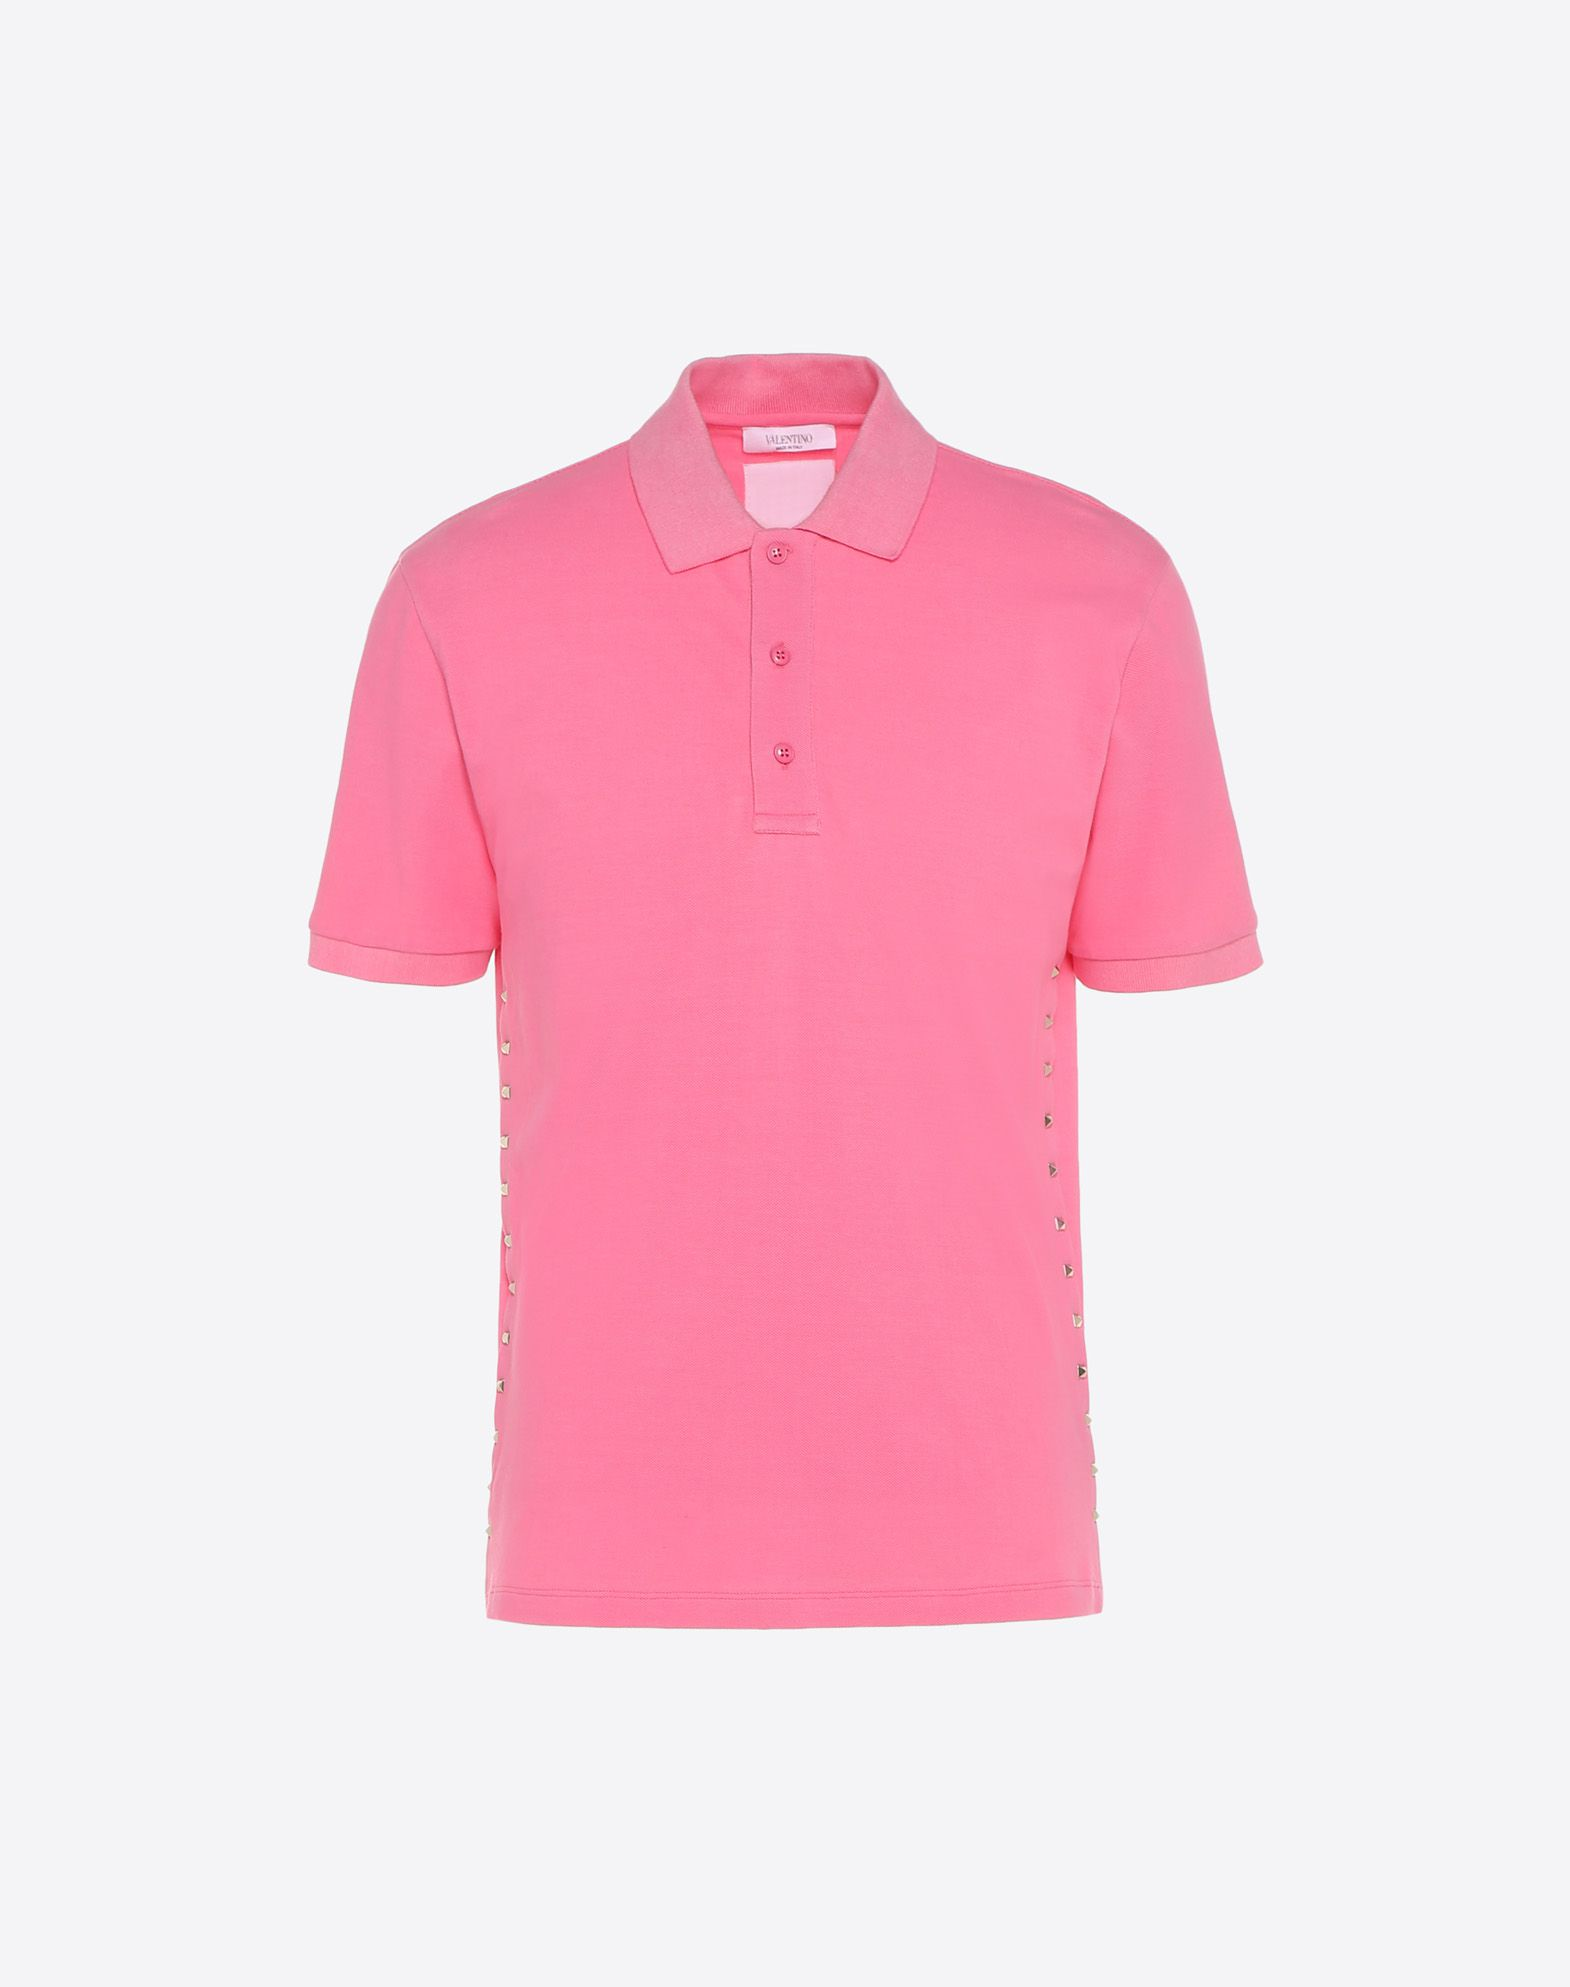 Rockstud Untitled Polo